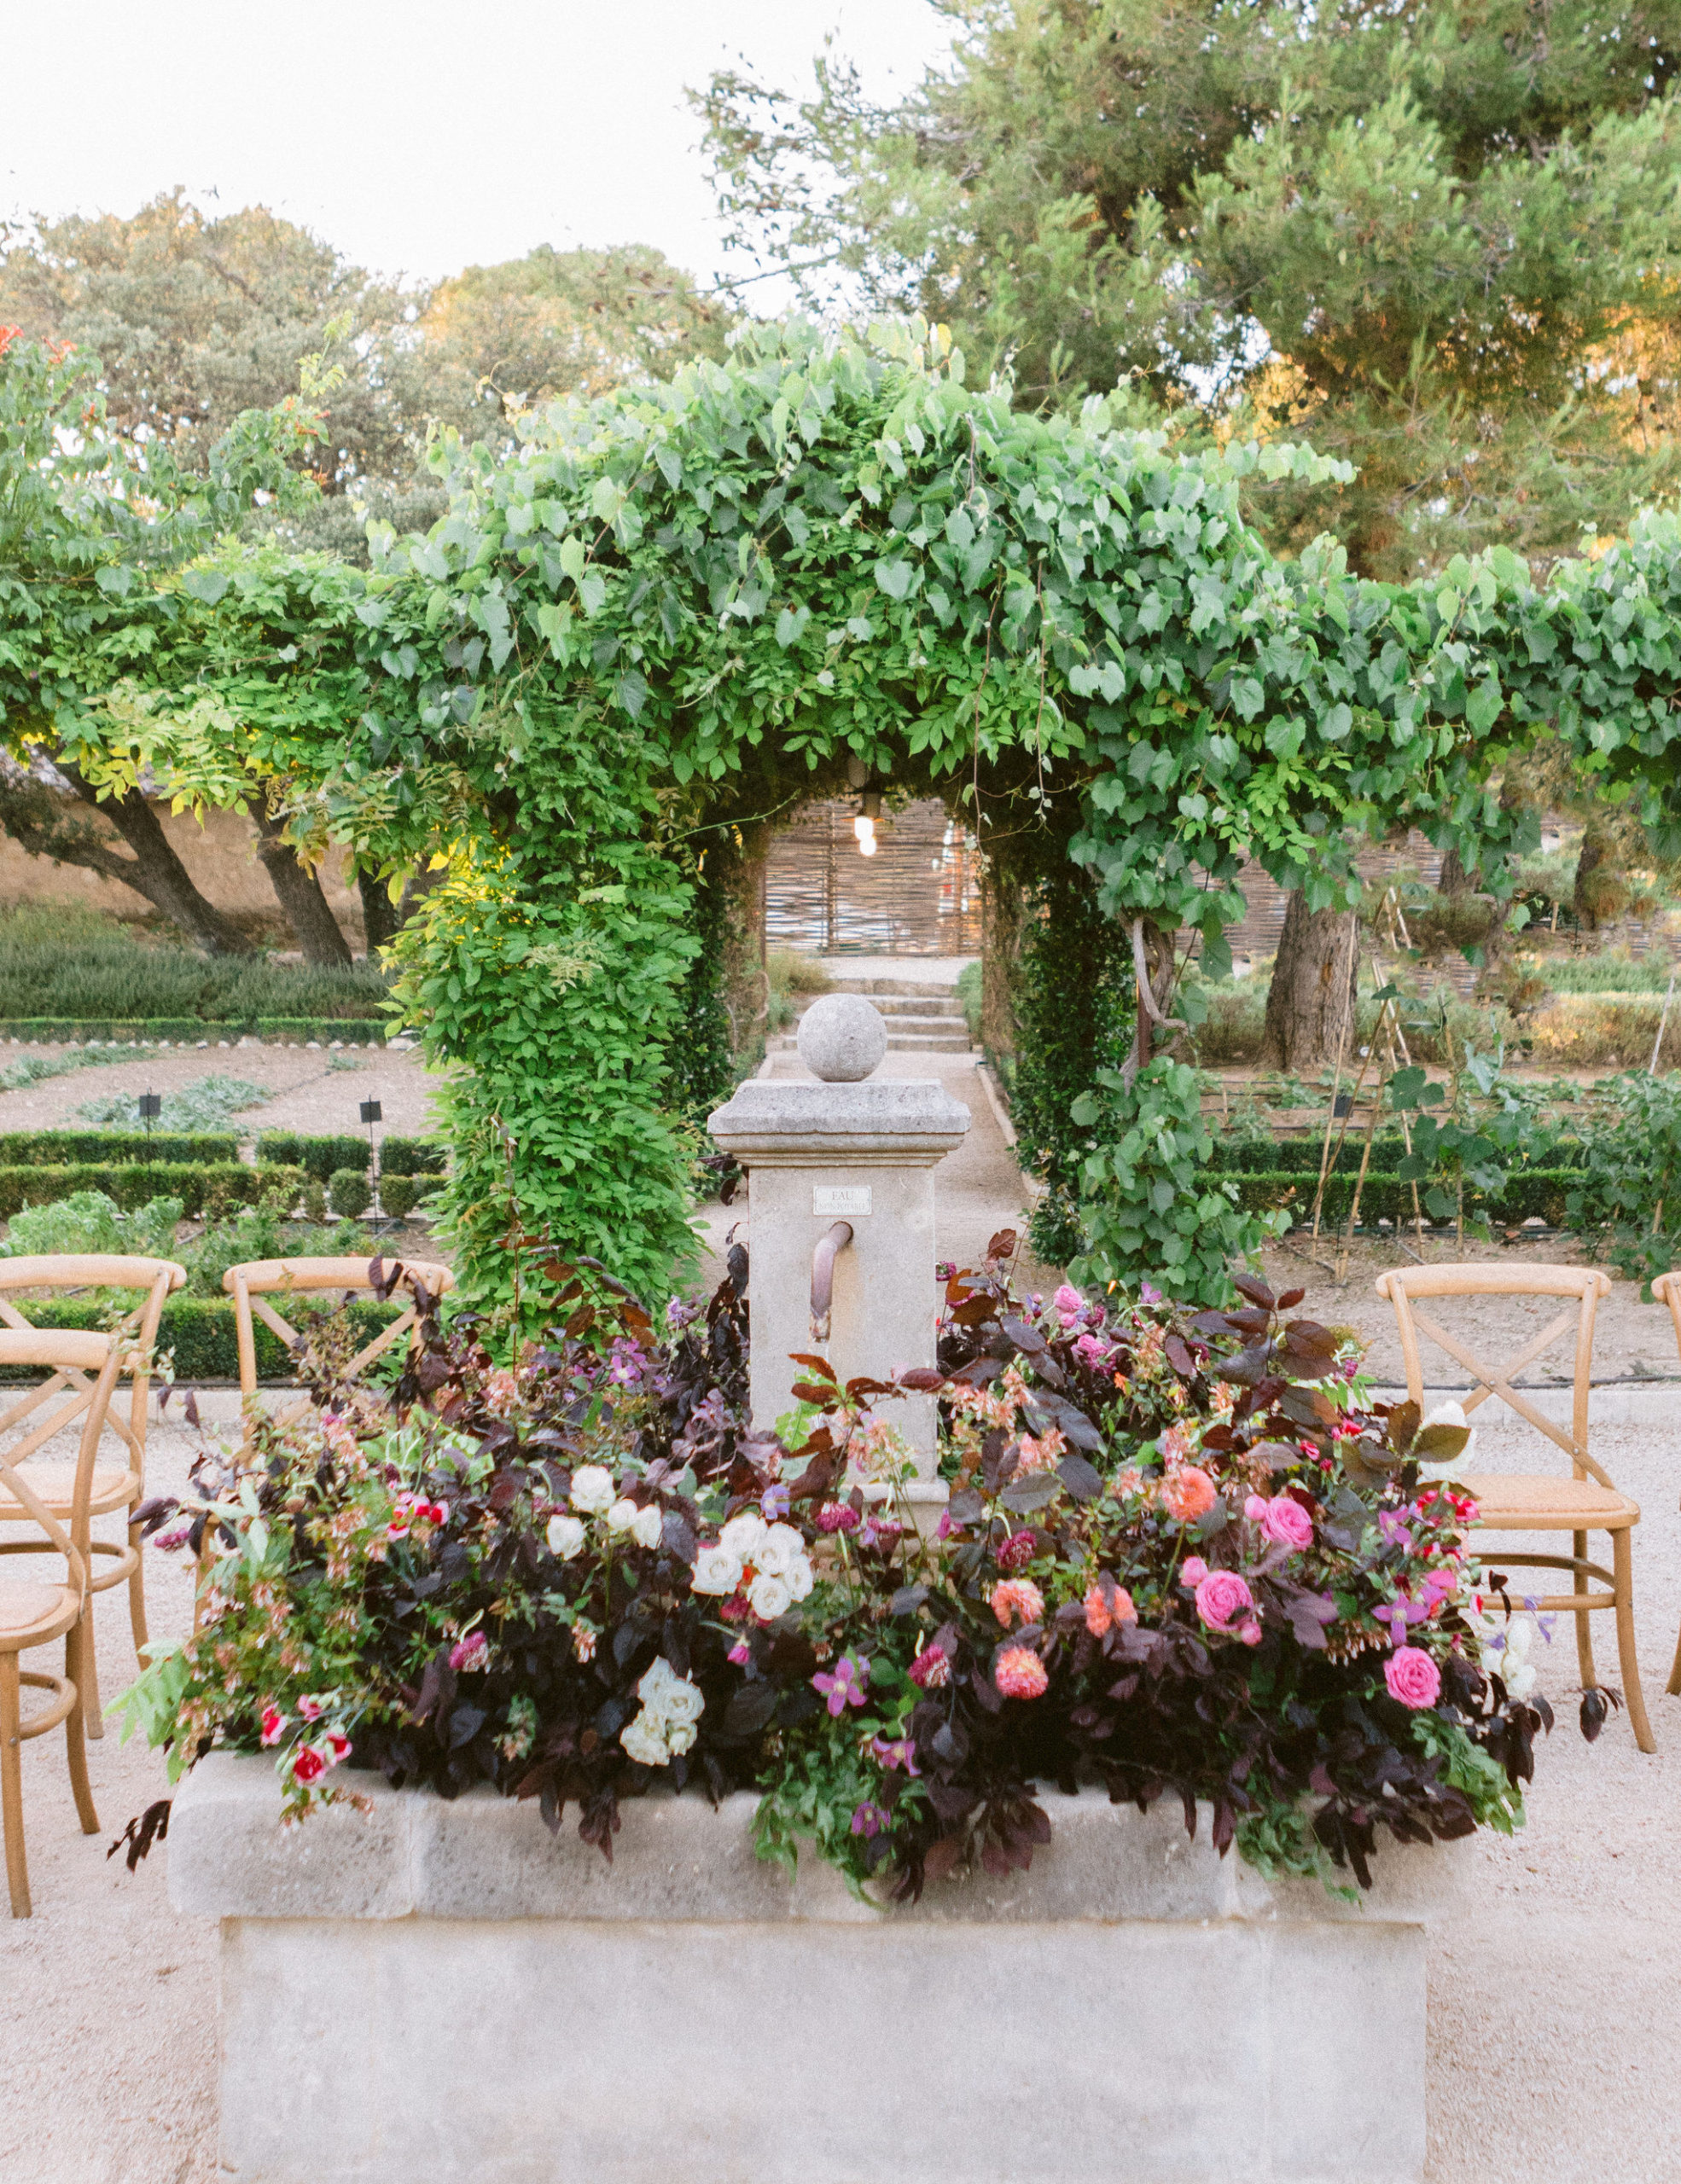 Ideas for a wedding in Provence